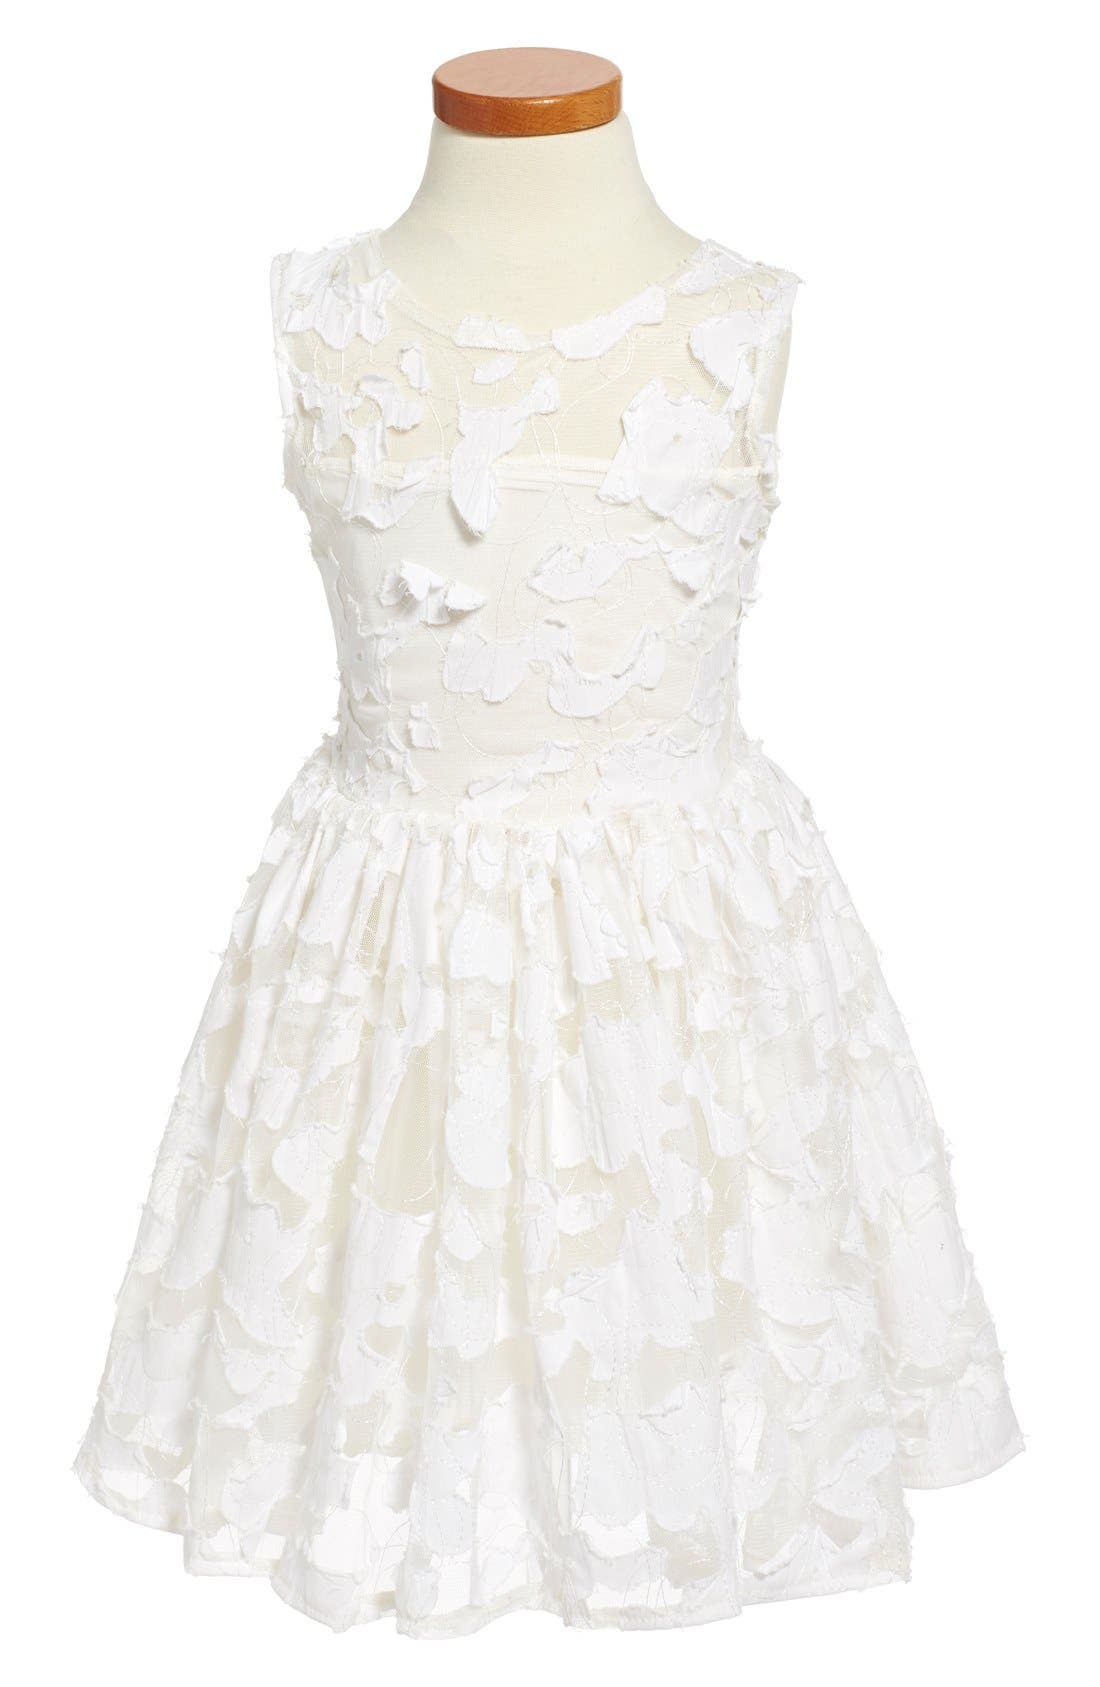 'Pretty in Ivory' Party Dress,                         Main,                         color, Ivory